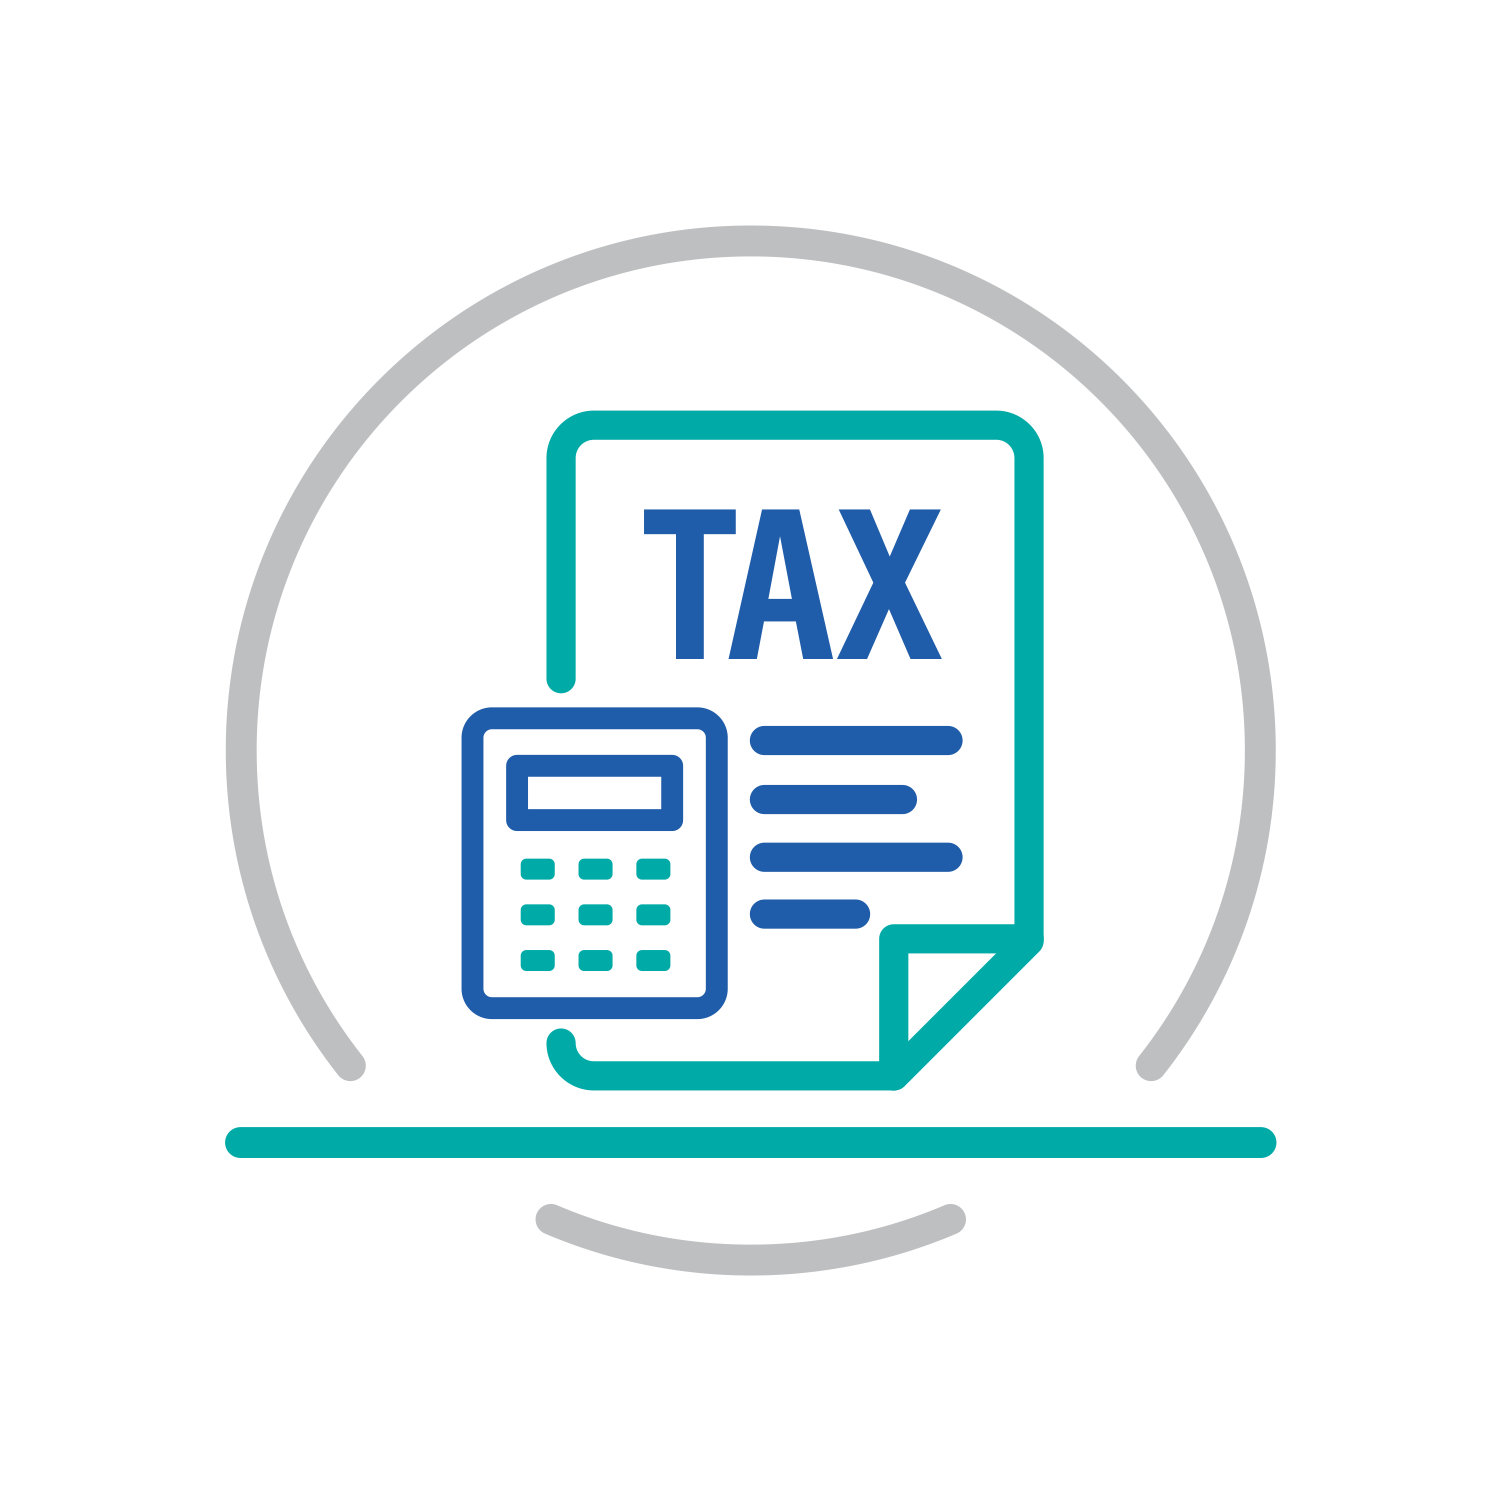 https://www.ducem.in/wp-content/uploads/2021/07/22-Tax-Planing.png